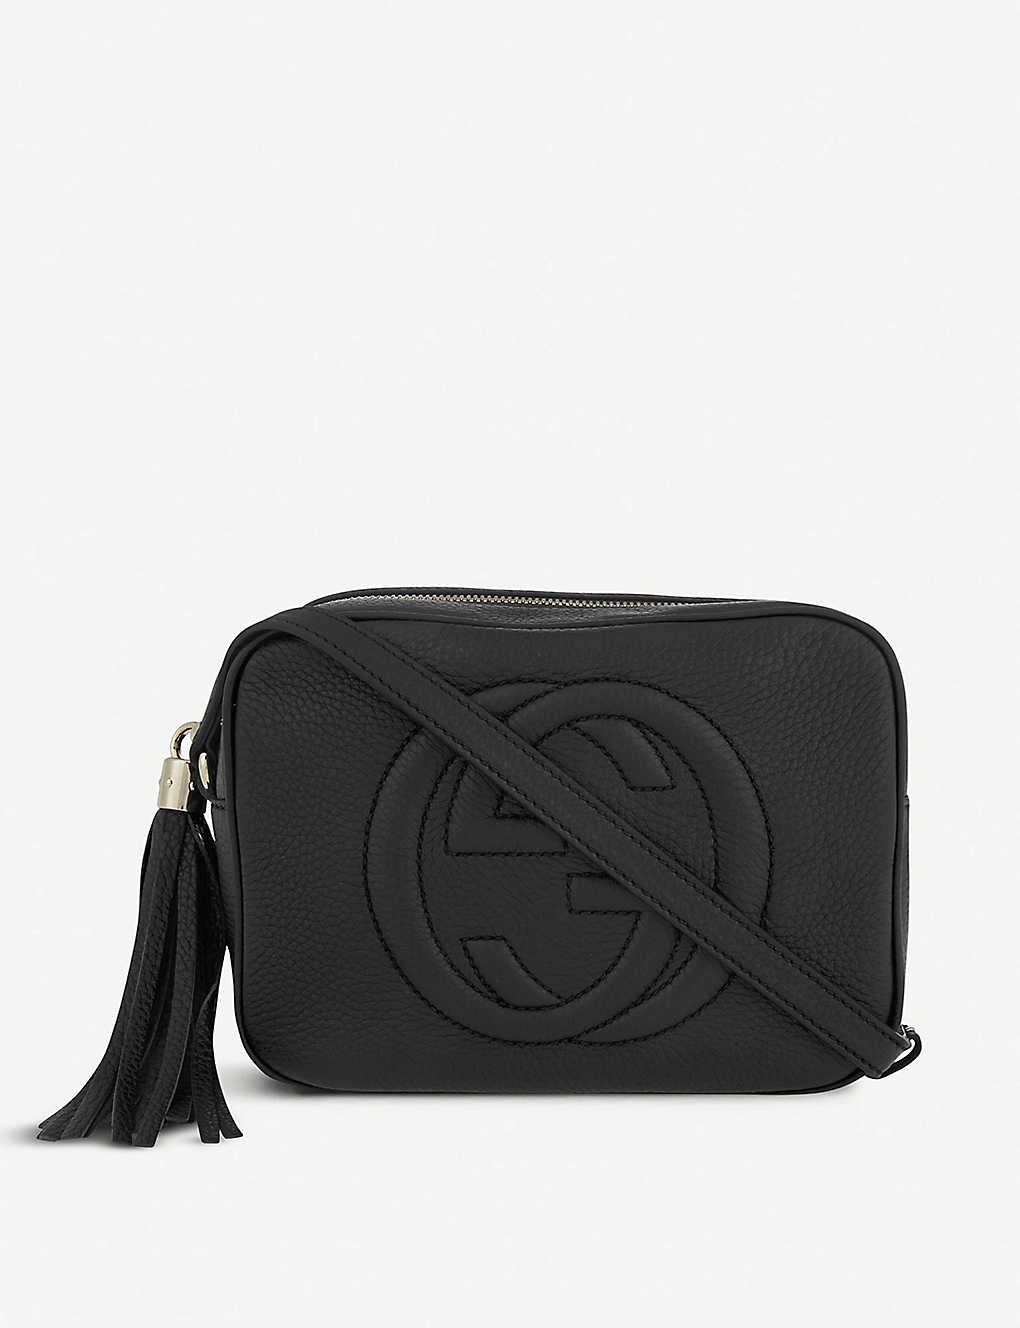 d6ac43ada90 GUCCI - Soho leather cross-body bag